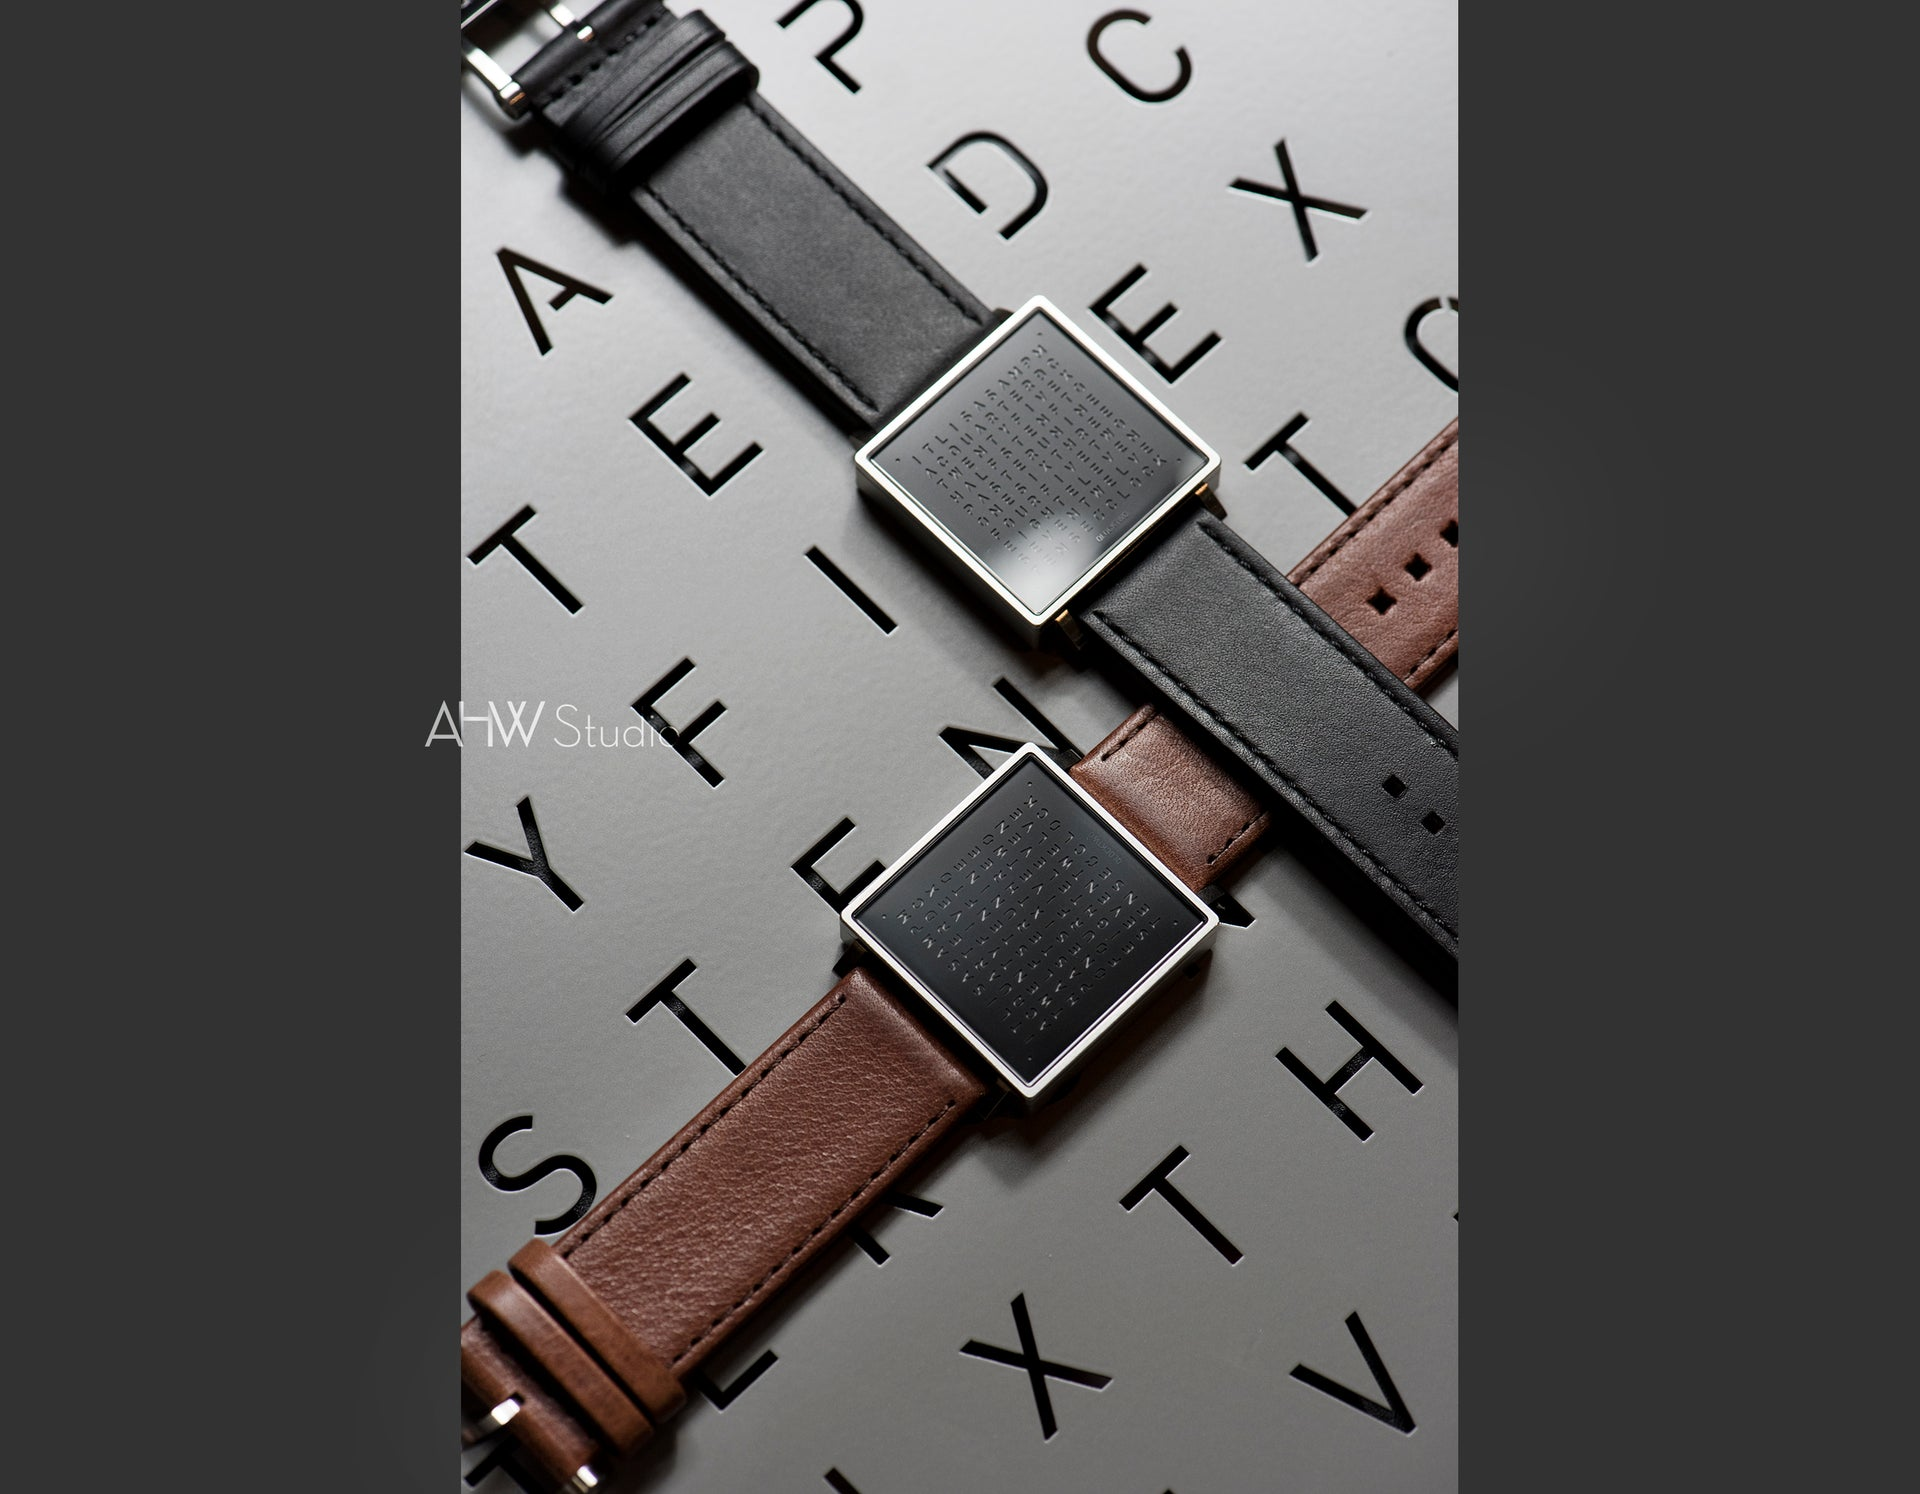 QLOCKTWO - 35mm - 'Brushed Steel' Wristwatch - AHW Studio